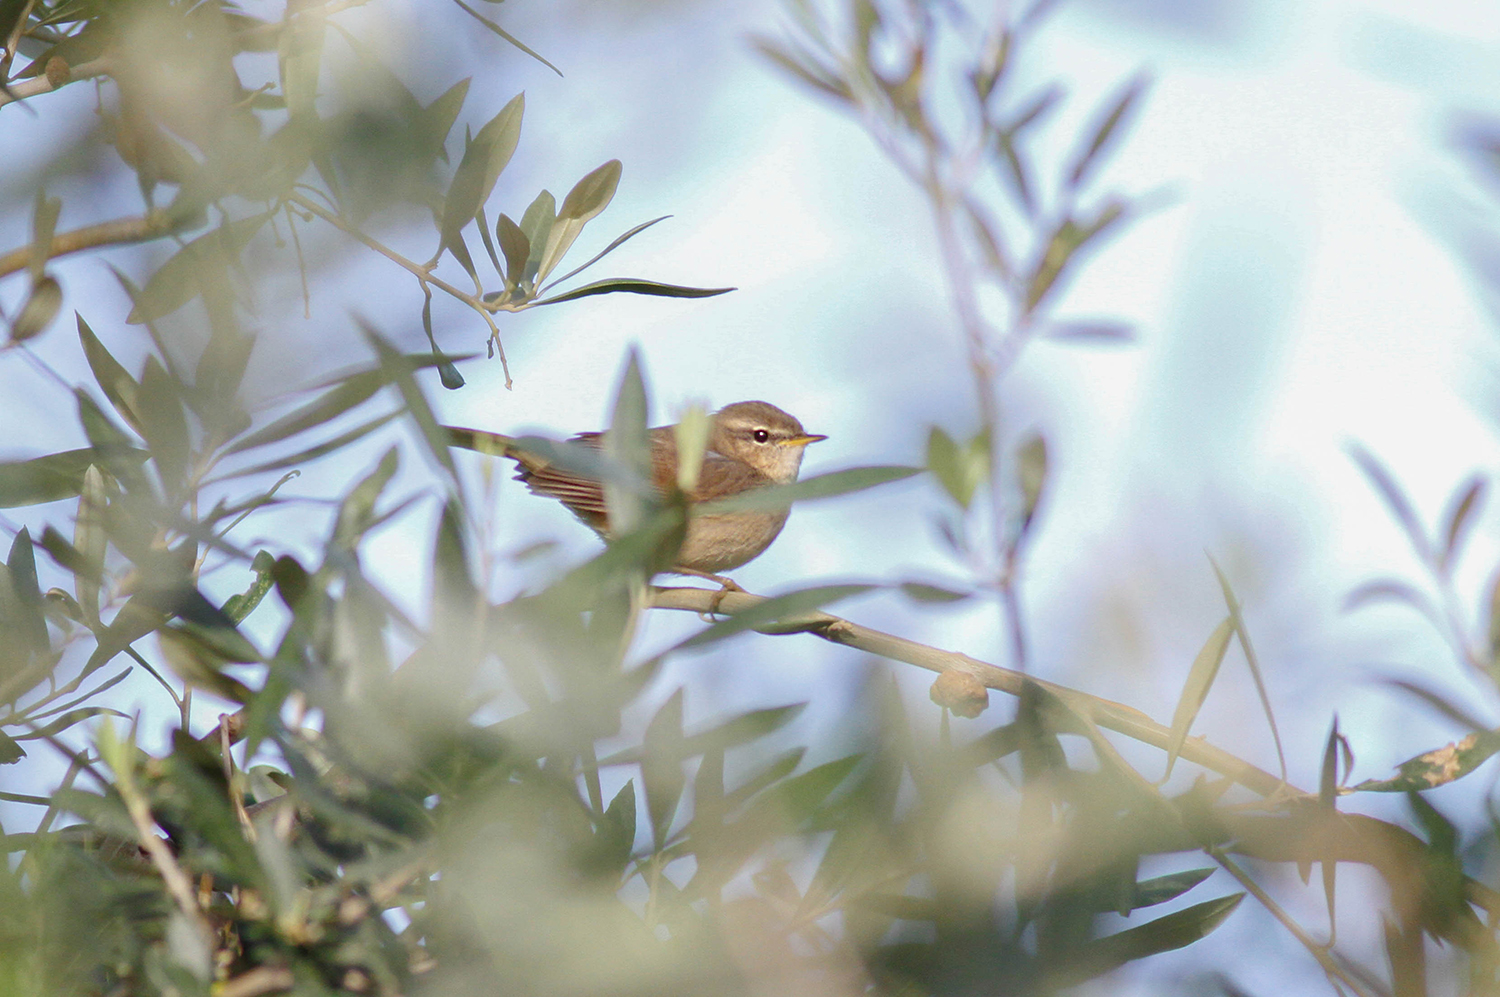 Dusky Warbler Cyprus Birding Tours Cyprus Bird watching Tours Cyprus Birds Bird is the Word ecotours birdguide